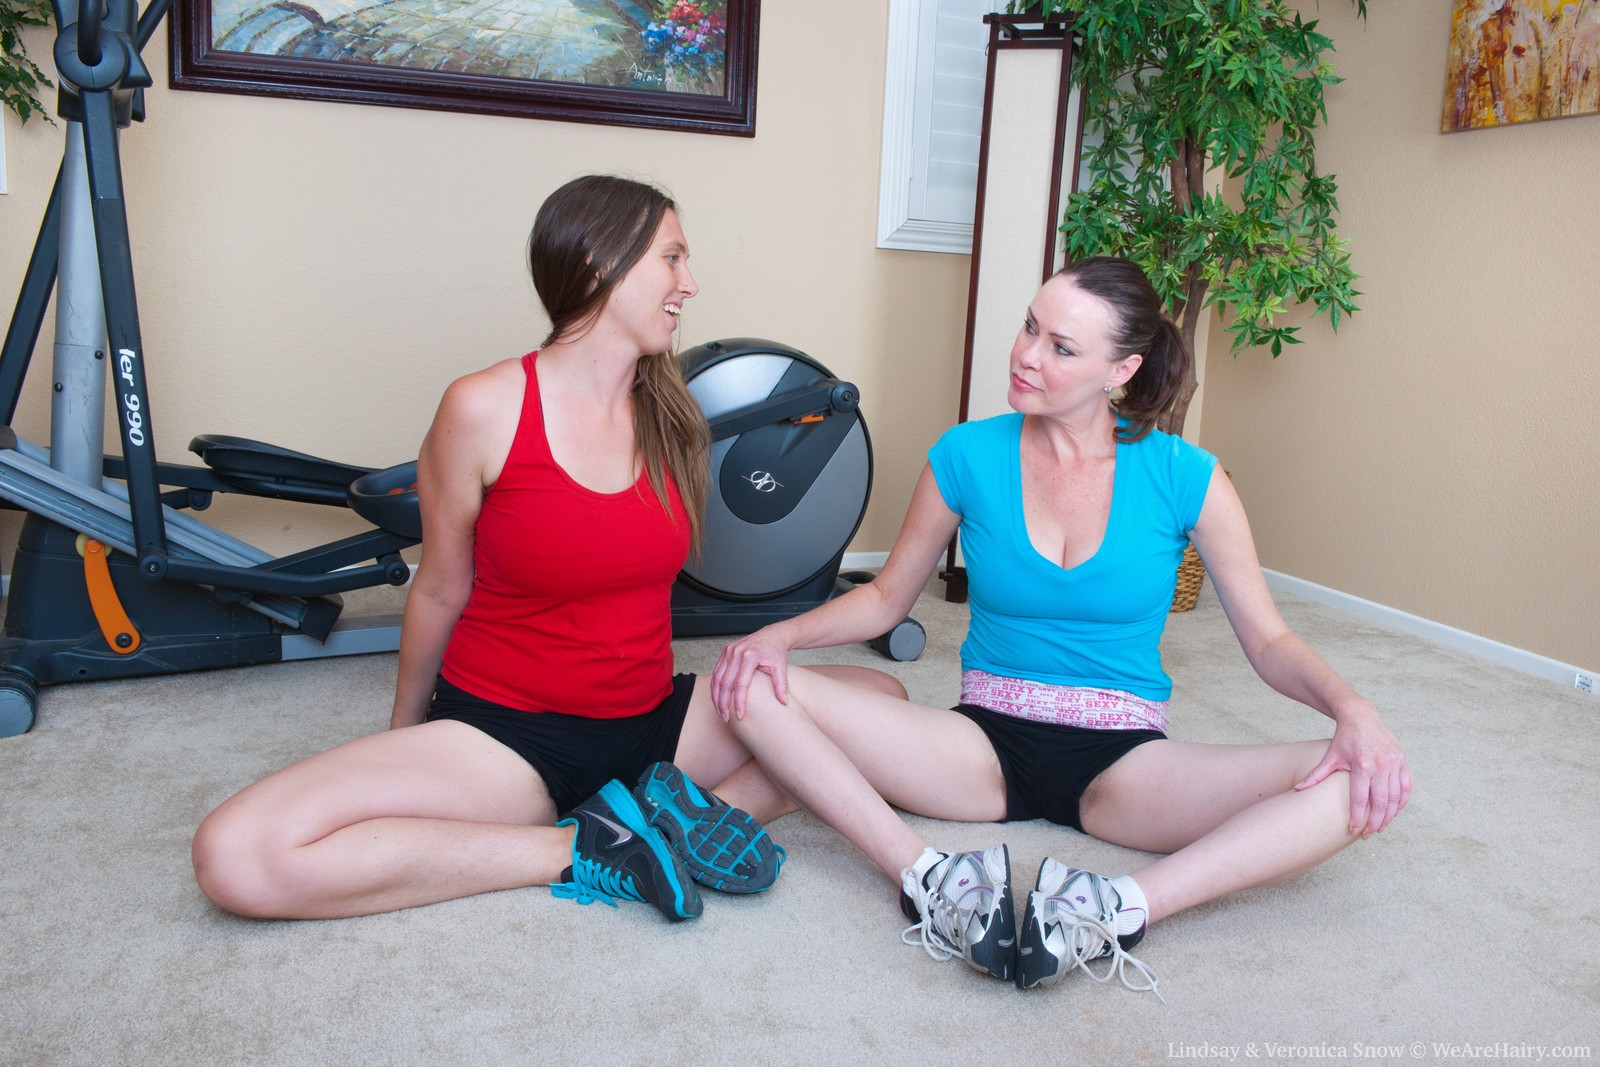 Lindsay and Veronica Snow has post workout curvy lesbo fuck session